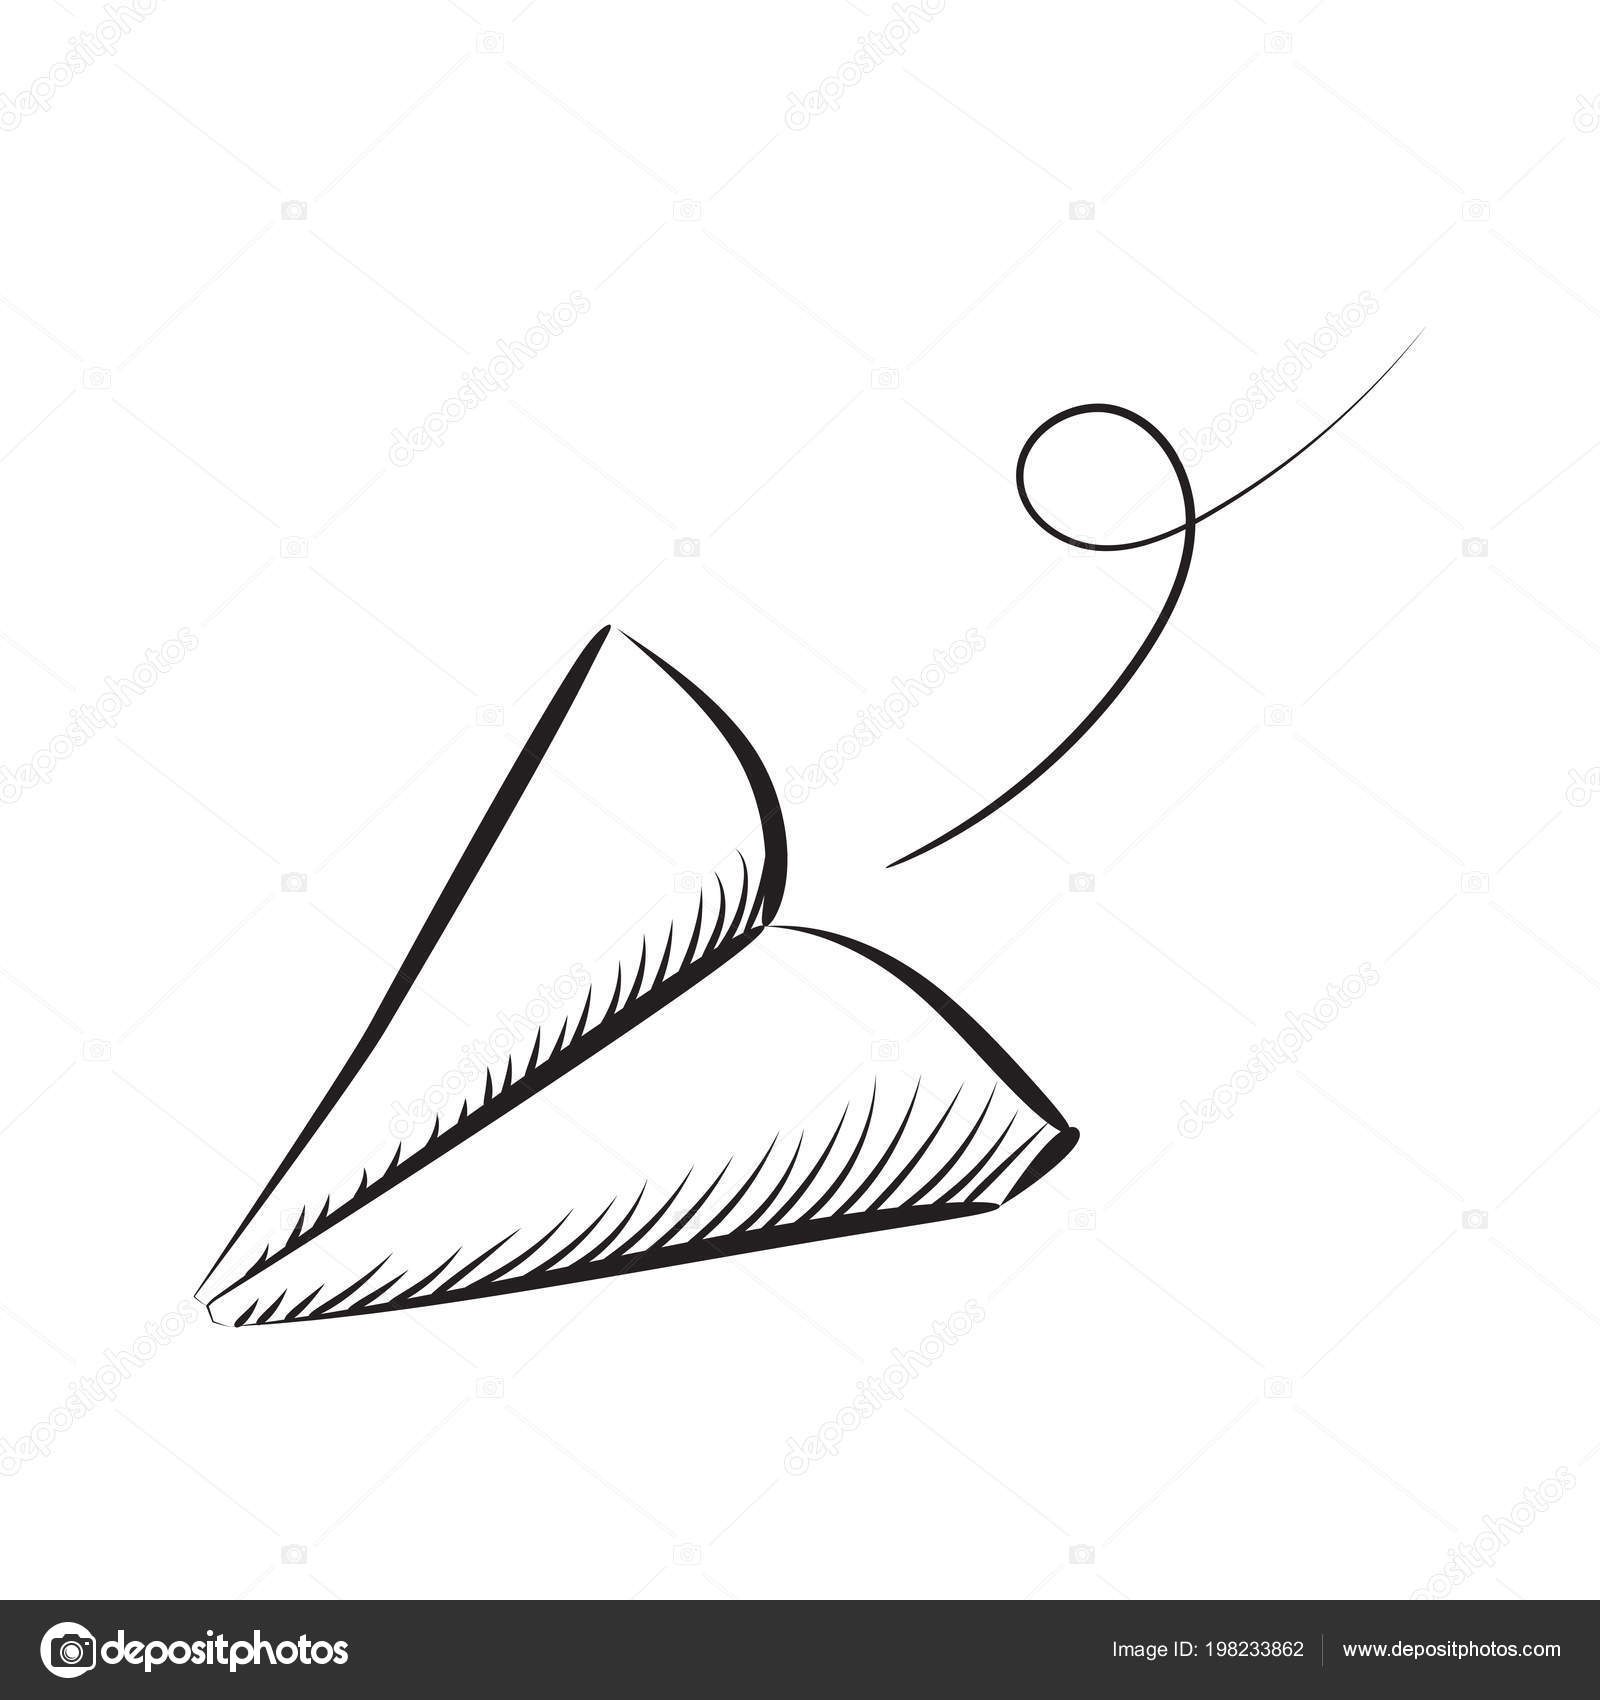 Sketched Paper Plane Vector Illustration Hand Drawn Simple